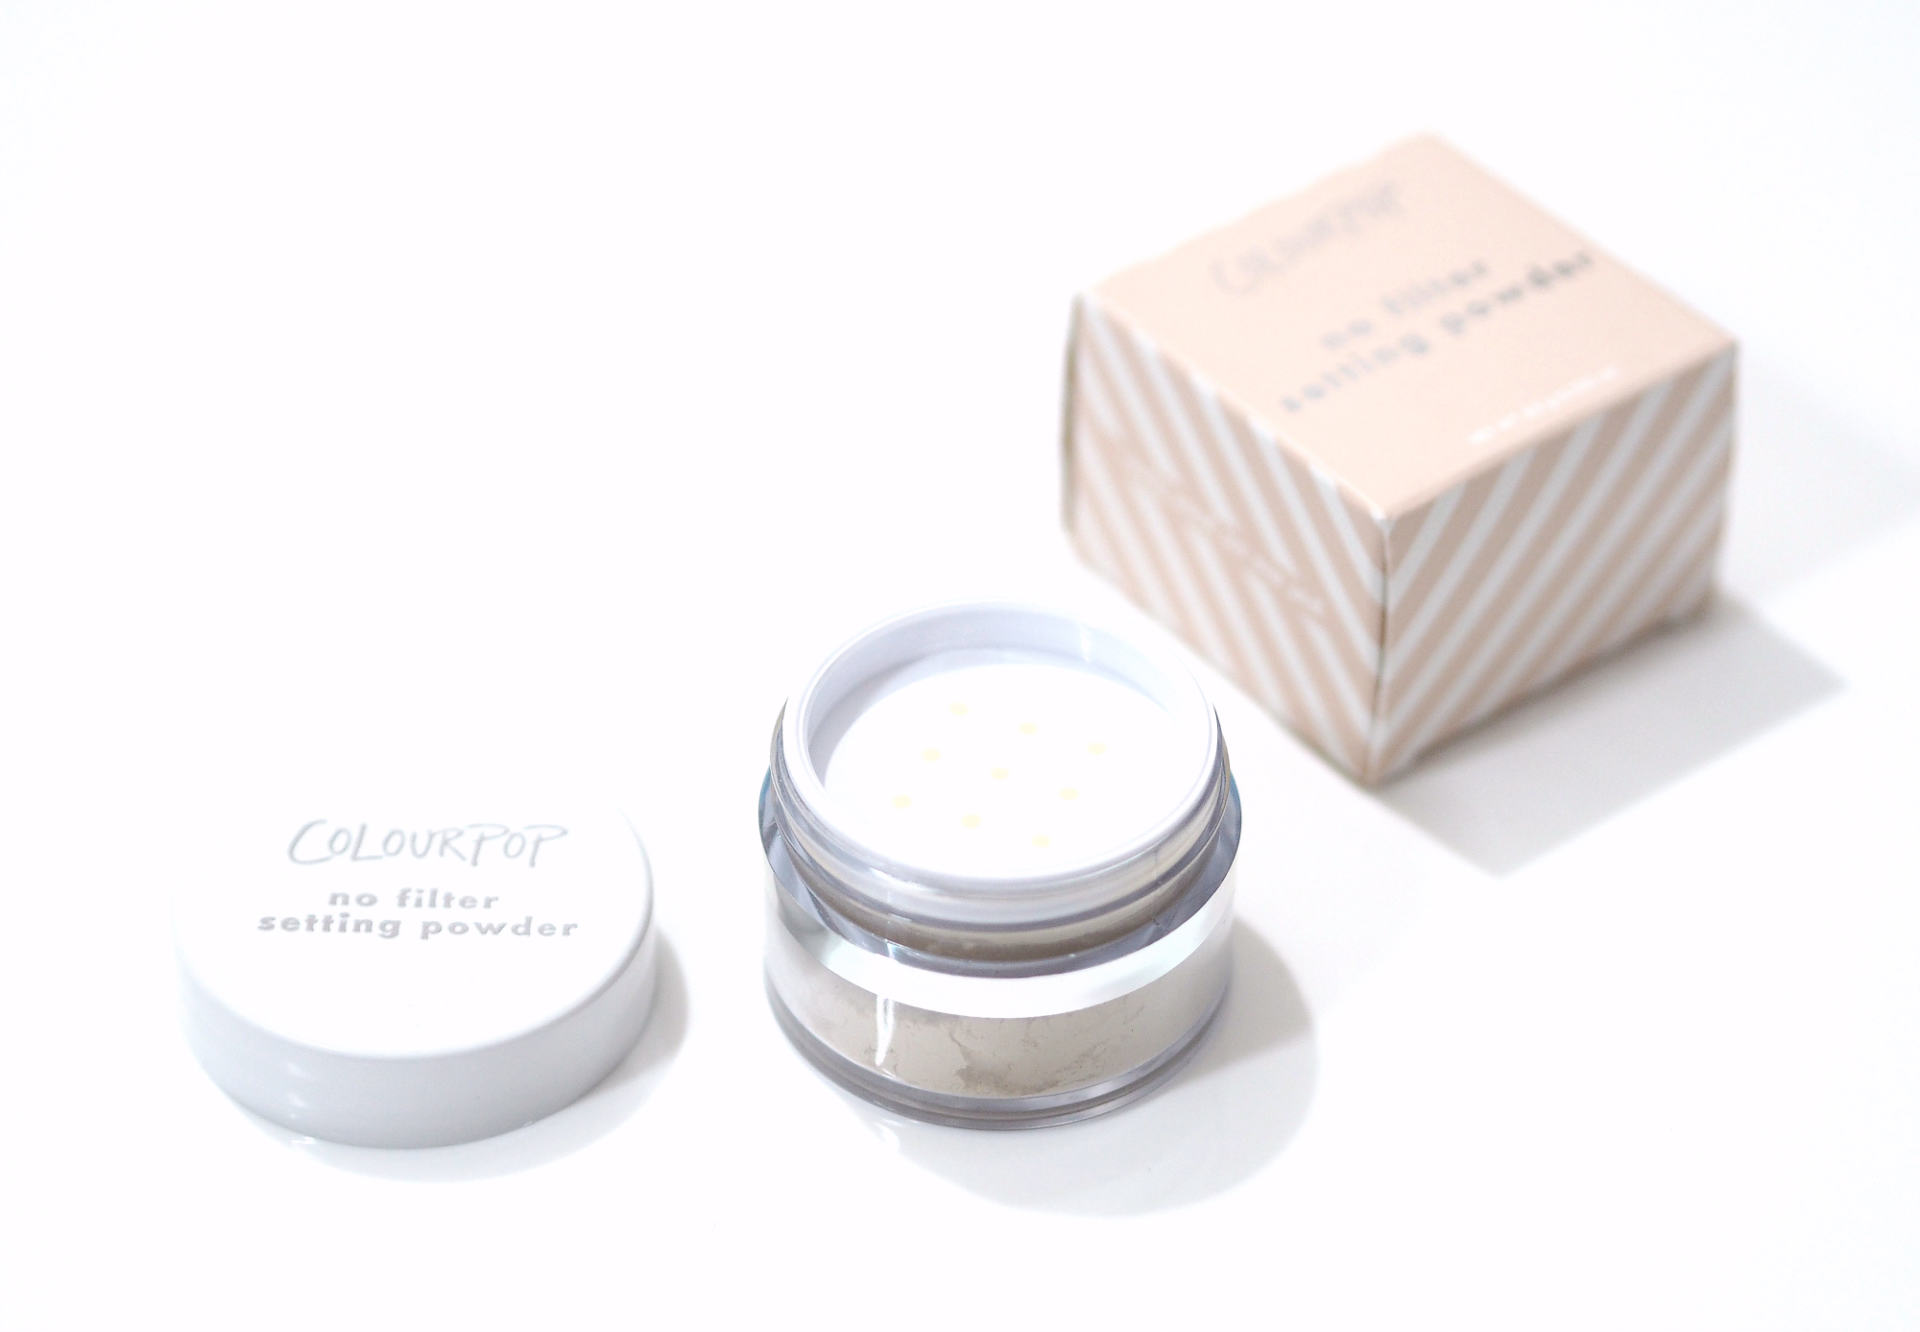 ColourPop No Filter Loose Setting Powder Review and Swatches in the shade Translucent